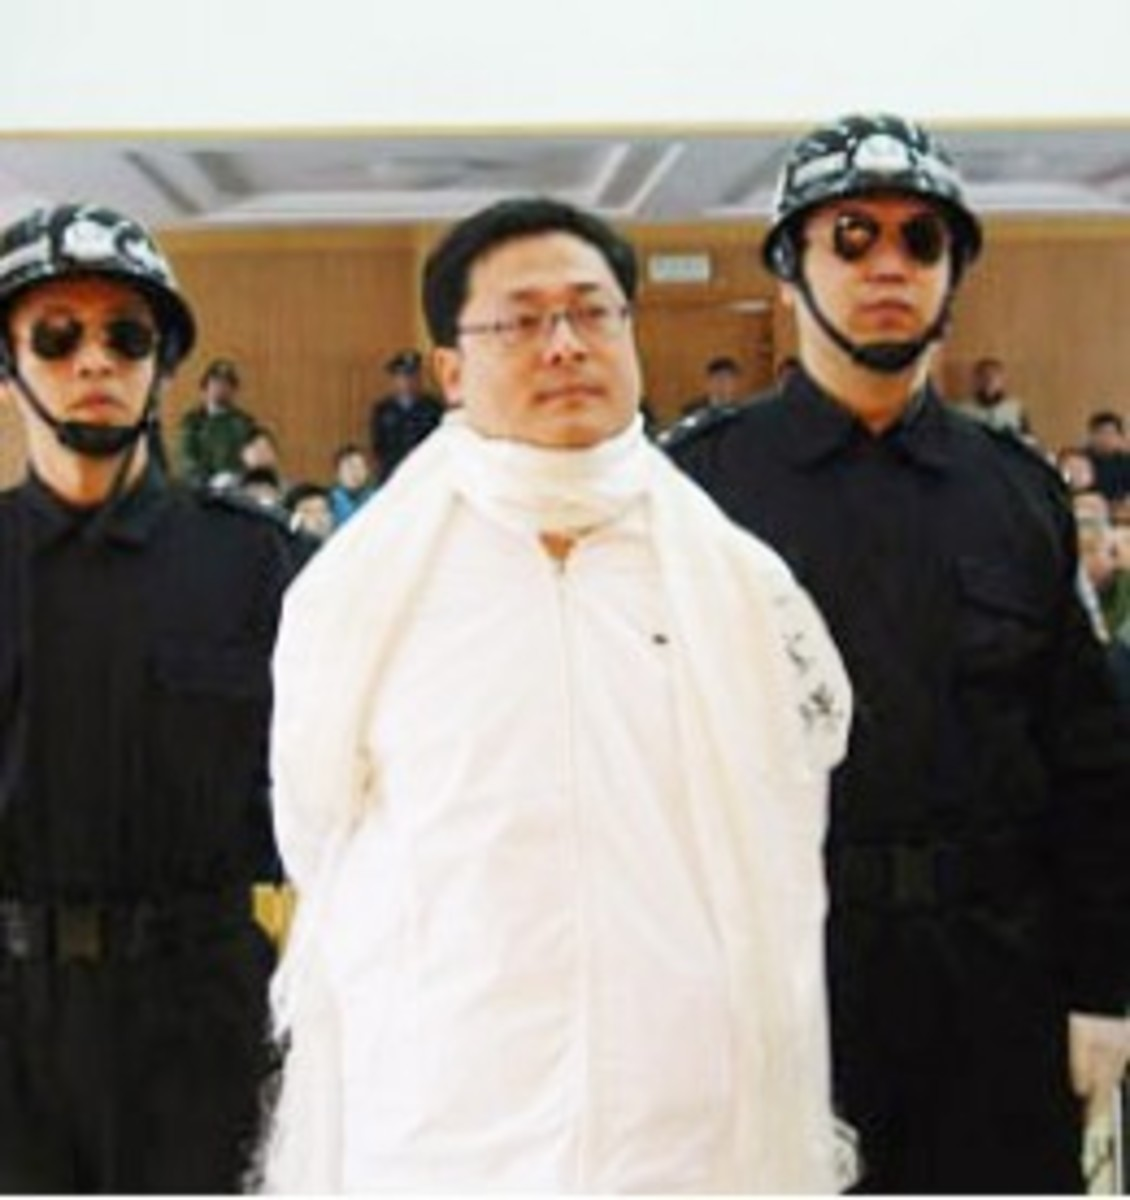 Yuan Bao jing being led to the execution van only hours after hearing the promulgation of his death sentence.